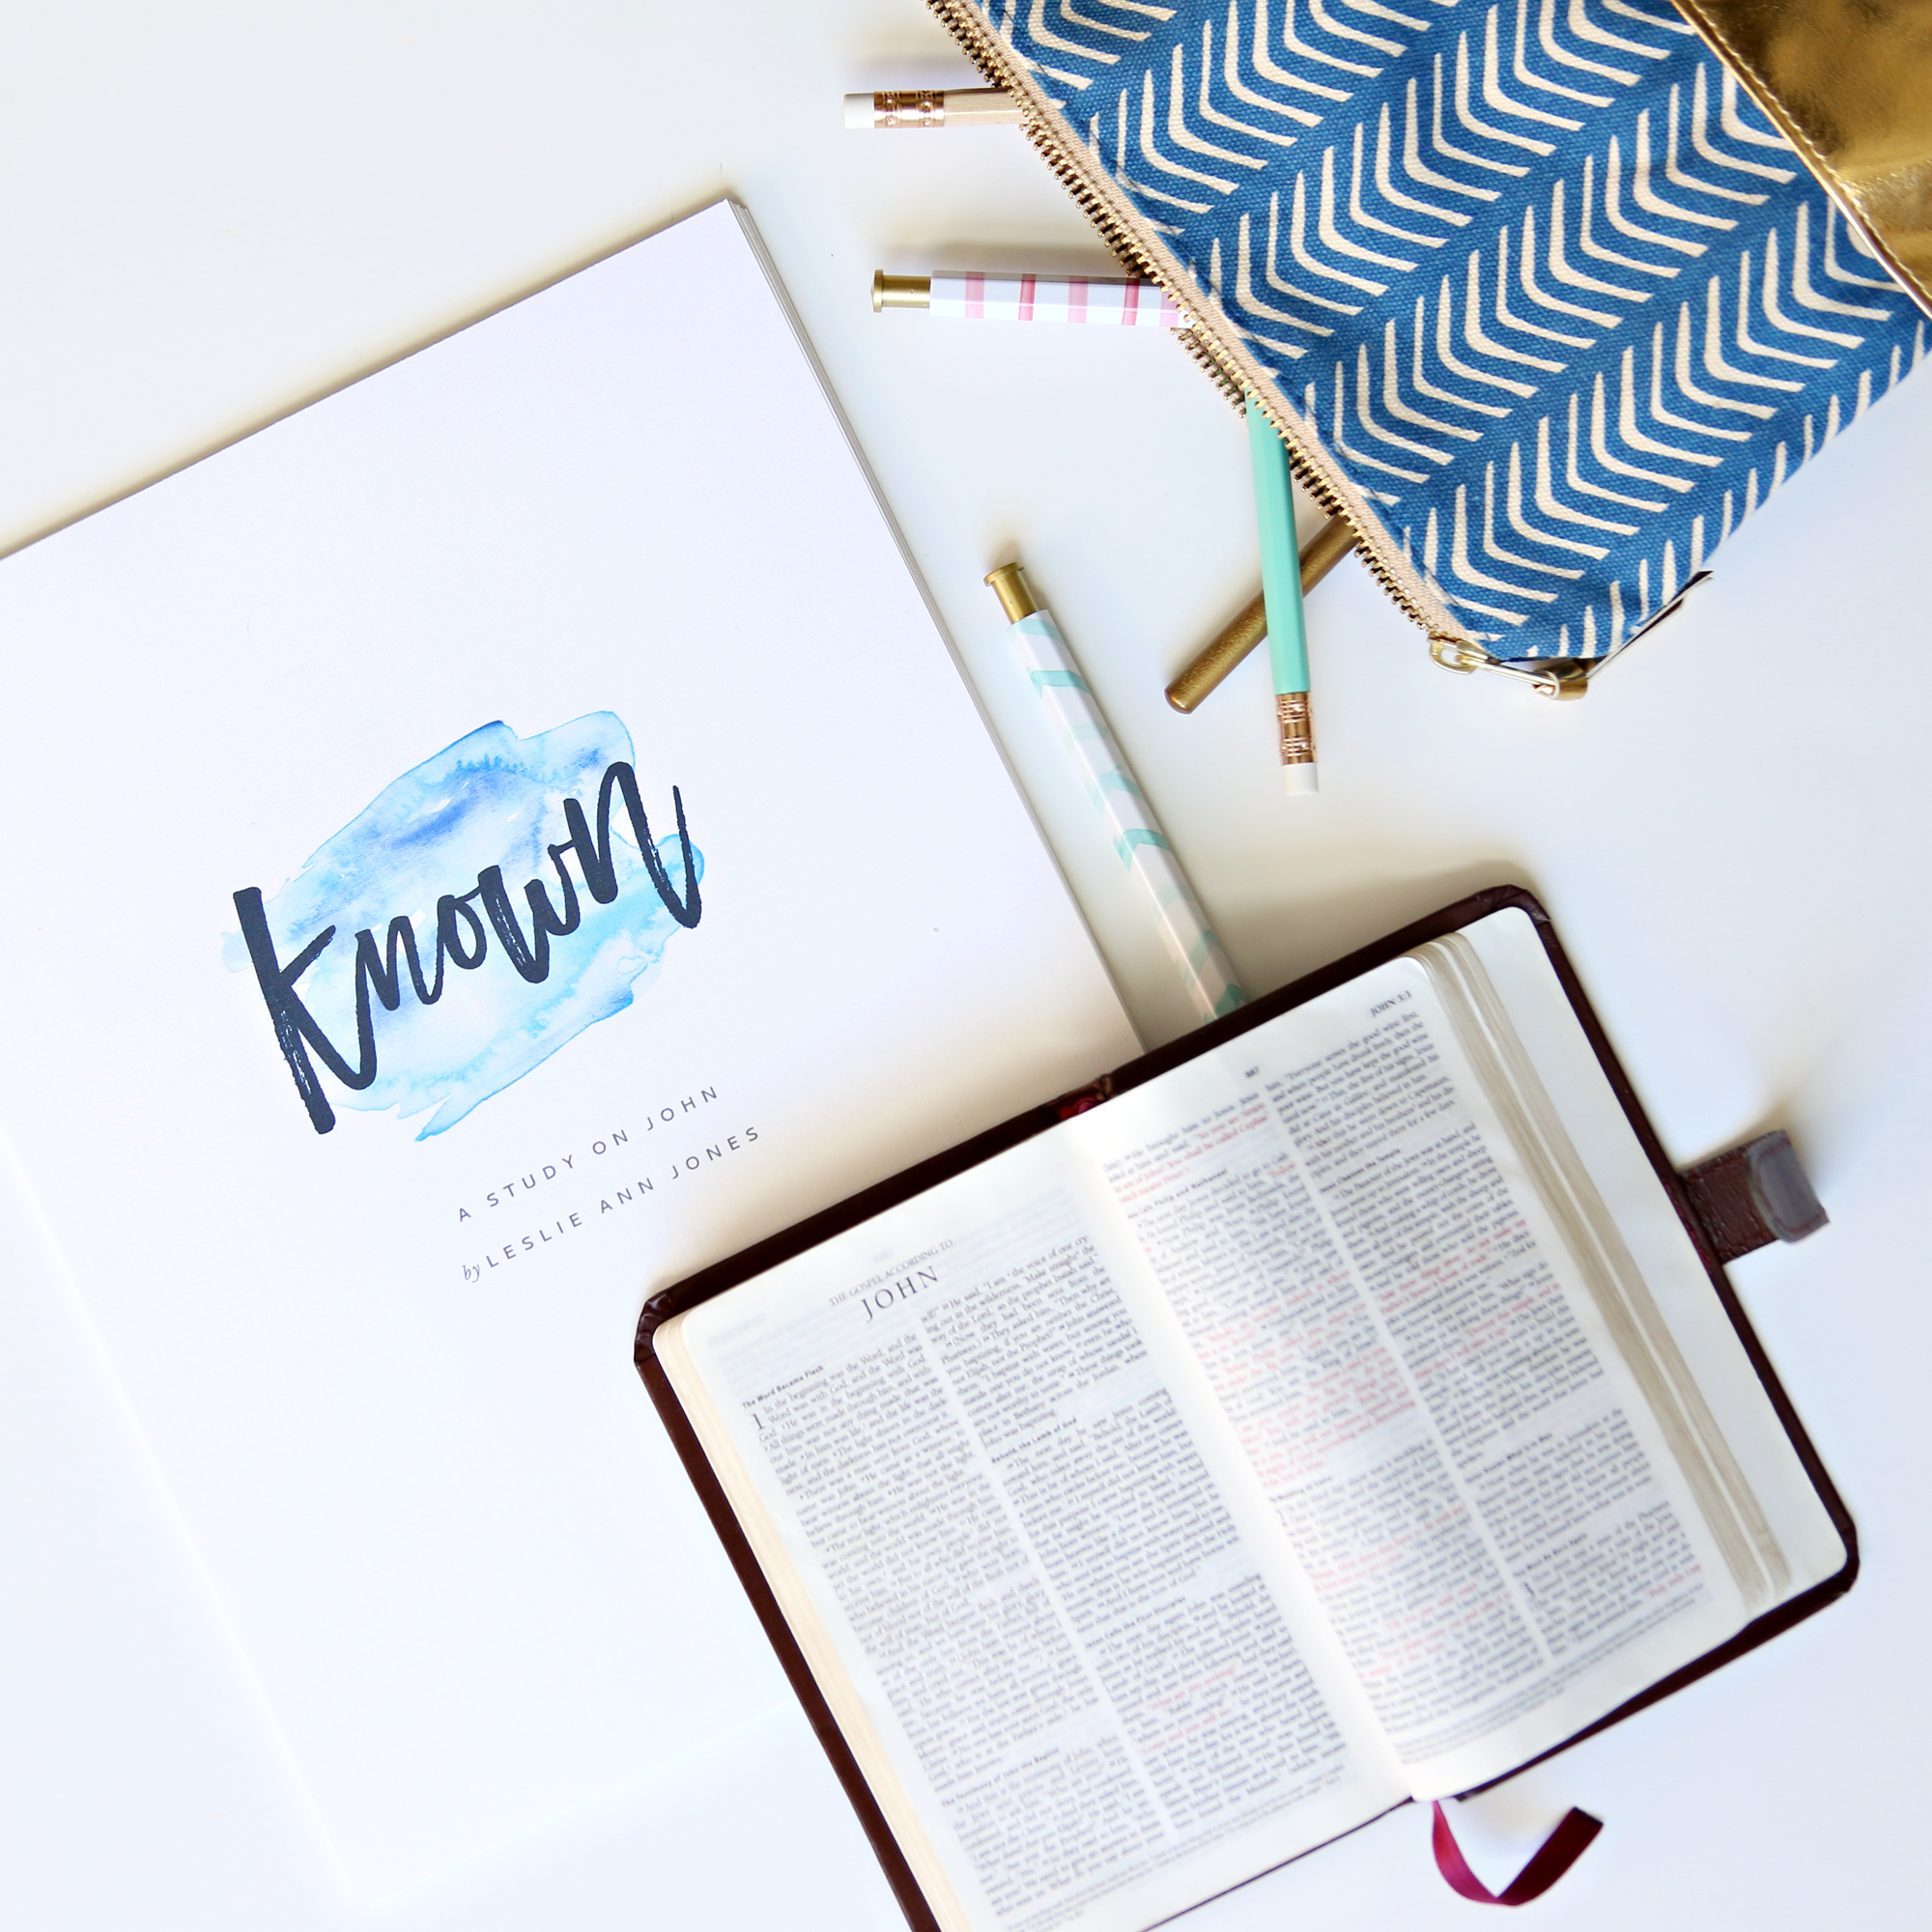 Known: A Study on the Gospel of John by Leslie Ann Jones